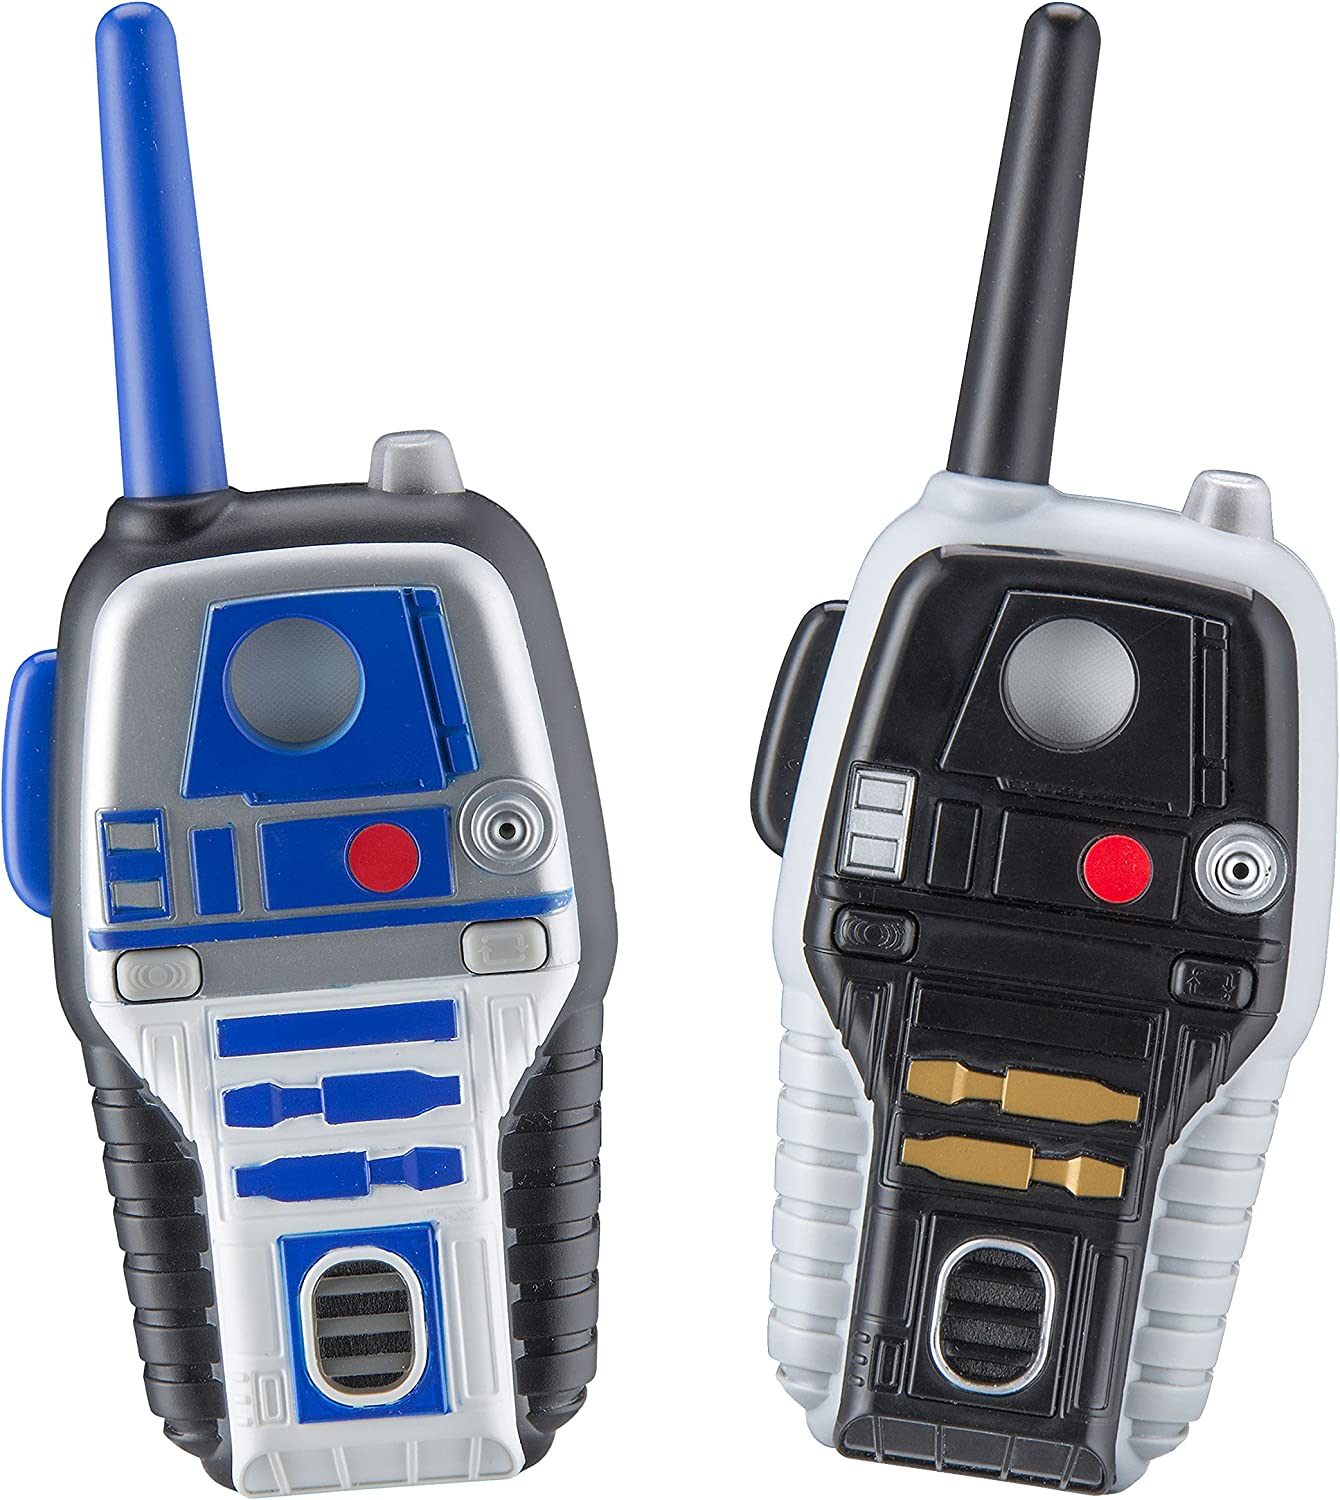 Star Wars R2D2 and R2Q5 FRS Walkie Talkies for Kids with Lights and Sounds Kid Friendly Easy to Use